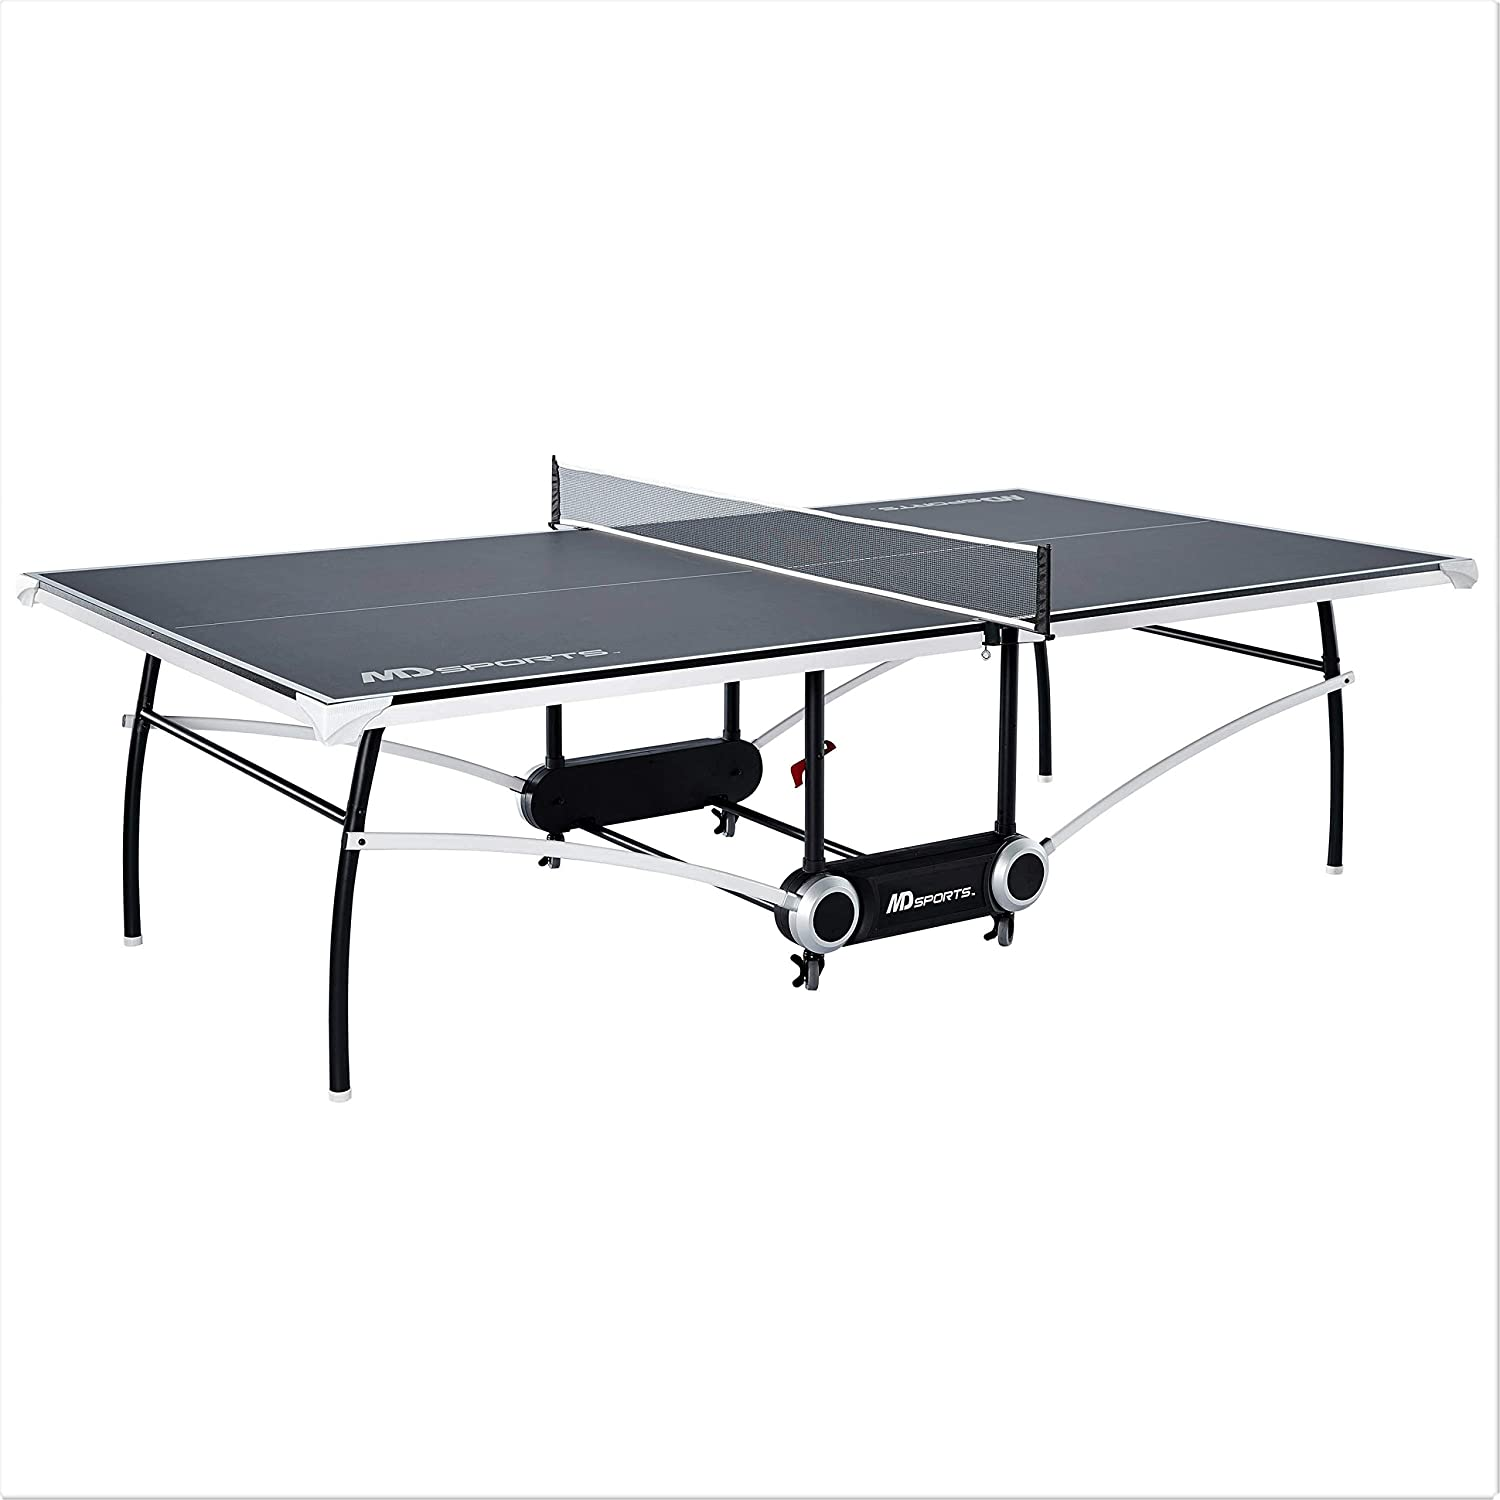 Amazon.com : MD Sports Table Tennis Table Net and Post Set Indoor